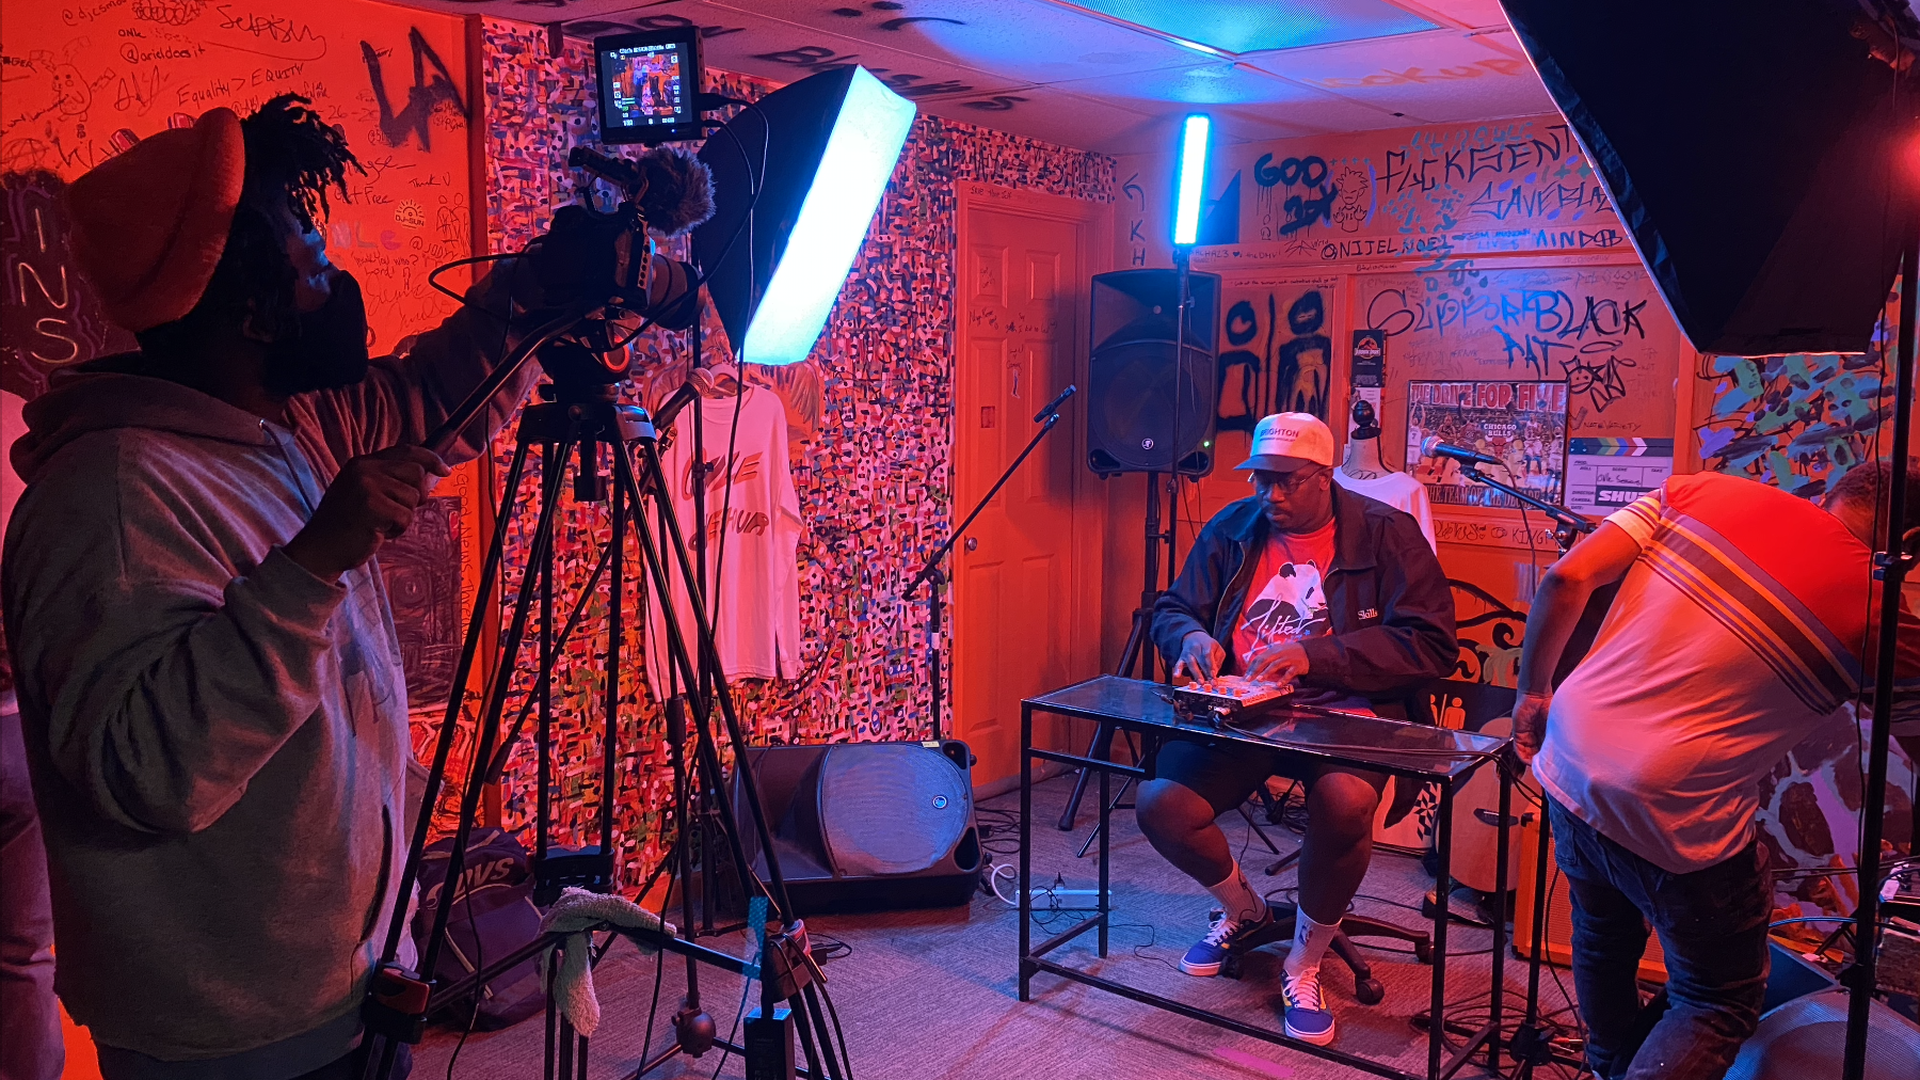 A man operates a camera as a musician plays an electronic sound board under red/orange lighting.